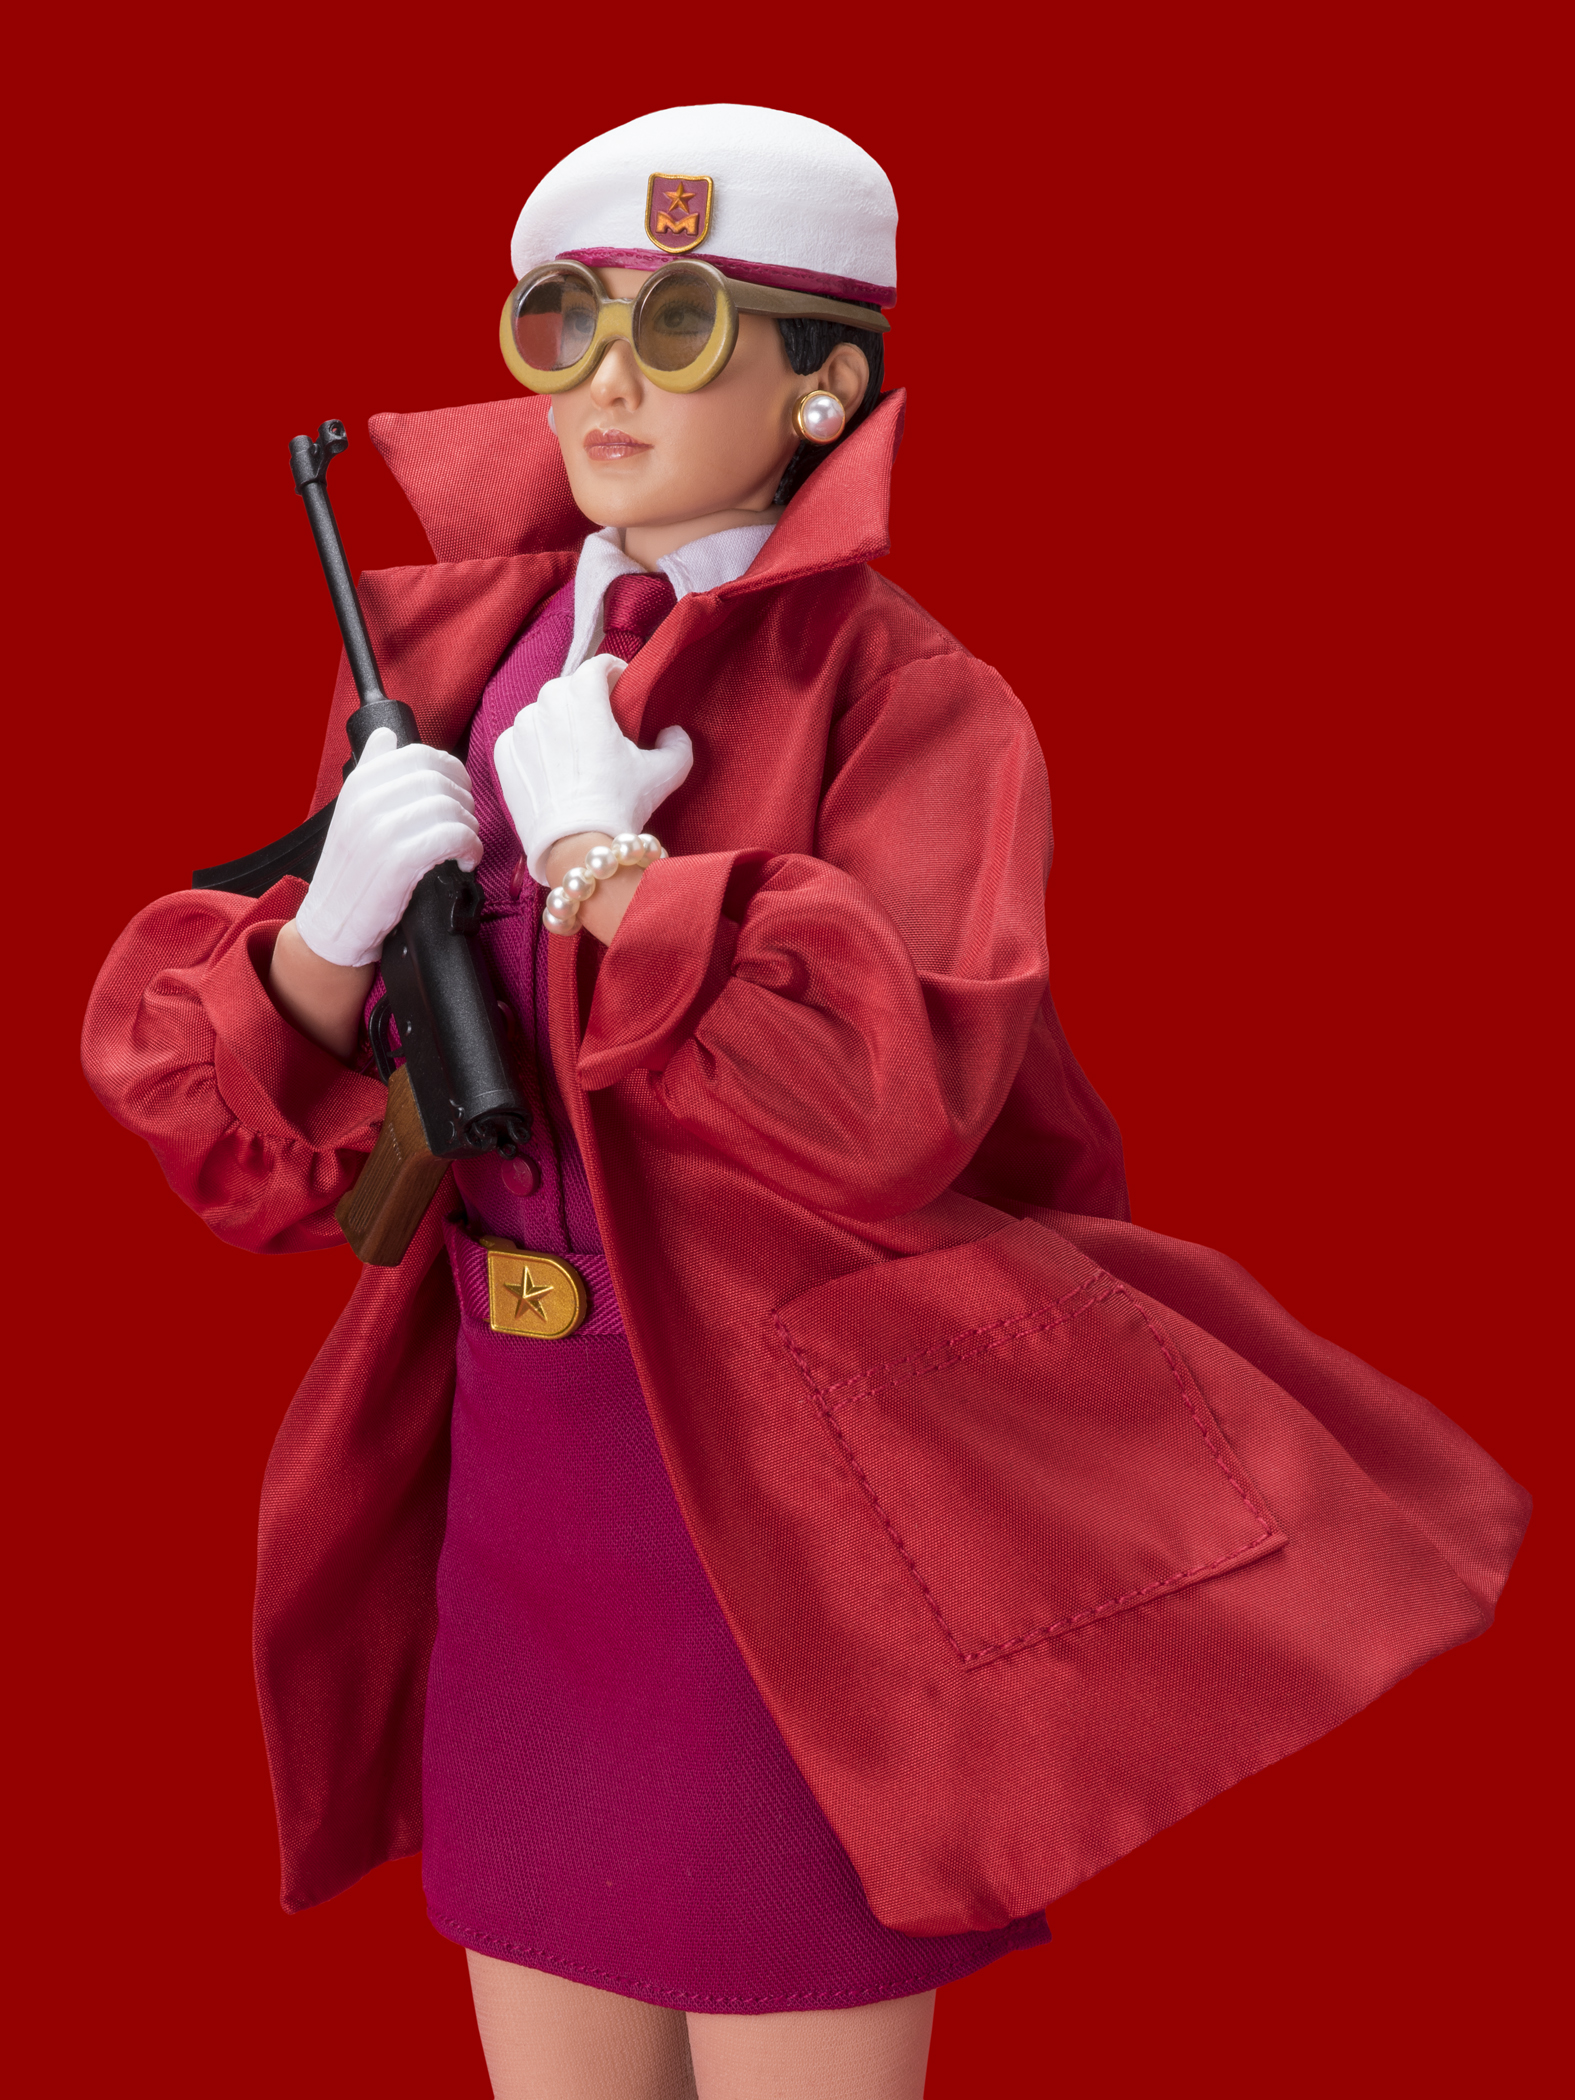 RED CHINESE DOLL (IN RED)